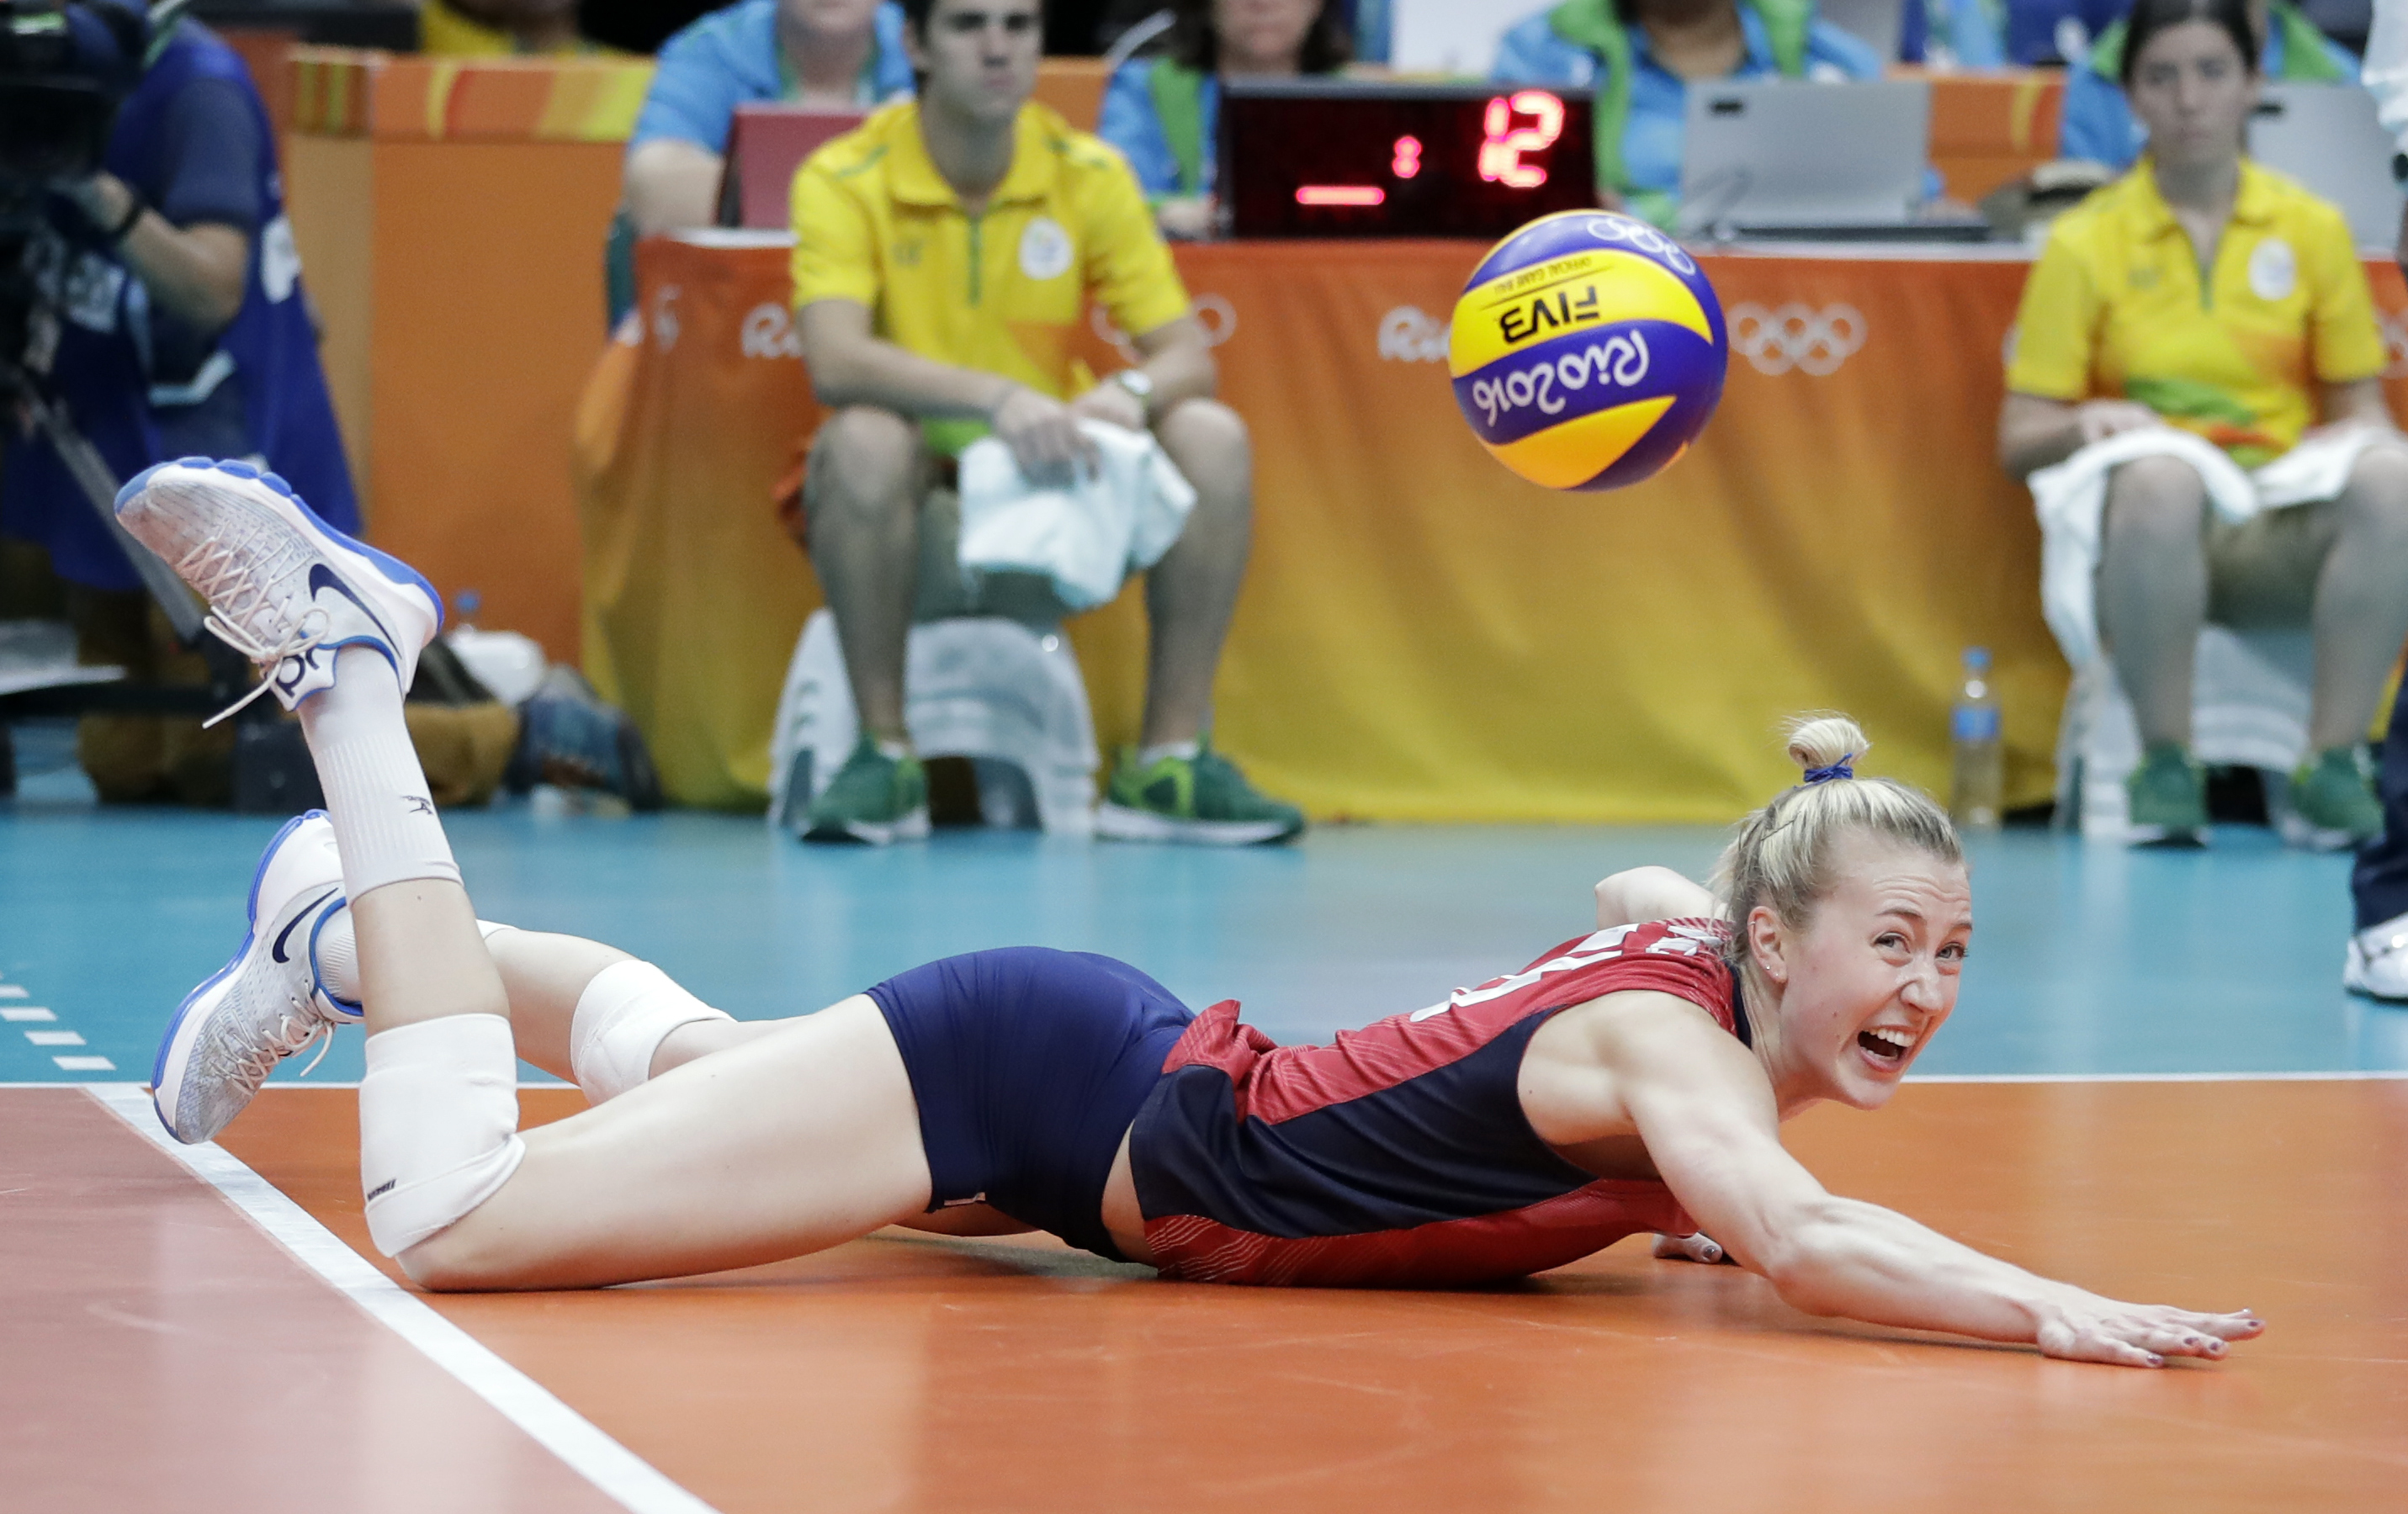 United States' Kim Hill is able to dig and save the volley during a women's preliminary volleyball match against Italy at the 2016 Summer Olympics in Rio de Janeiro, Brazil, Friday, Aug. 12, 2016. (AP Photo/Jeff Roberson)